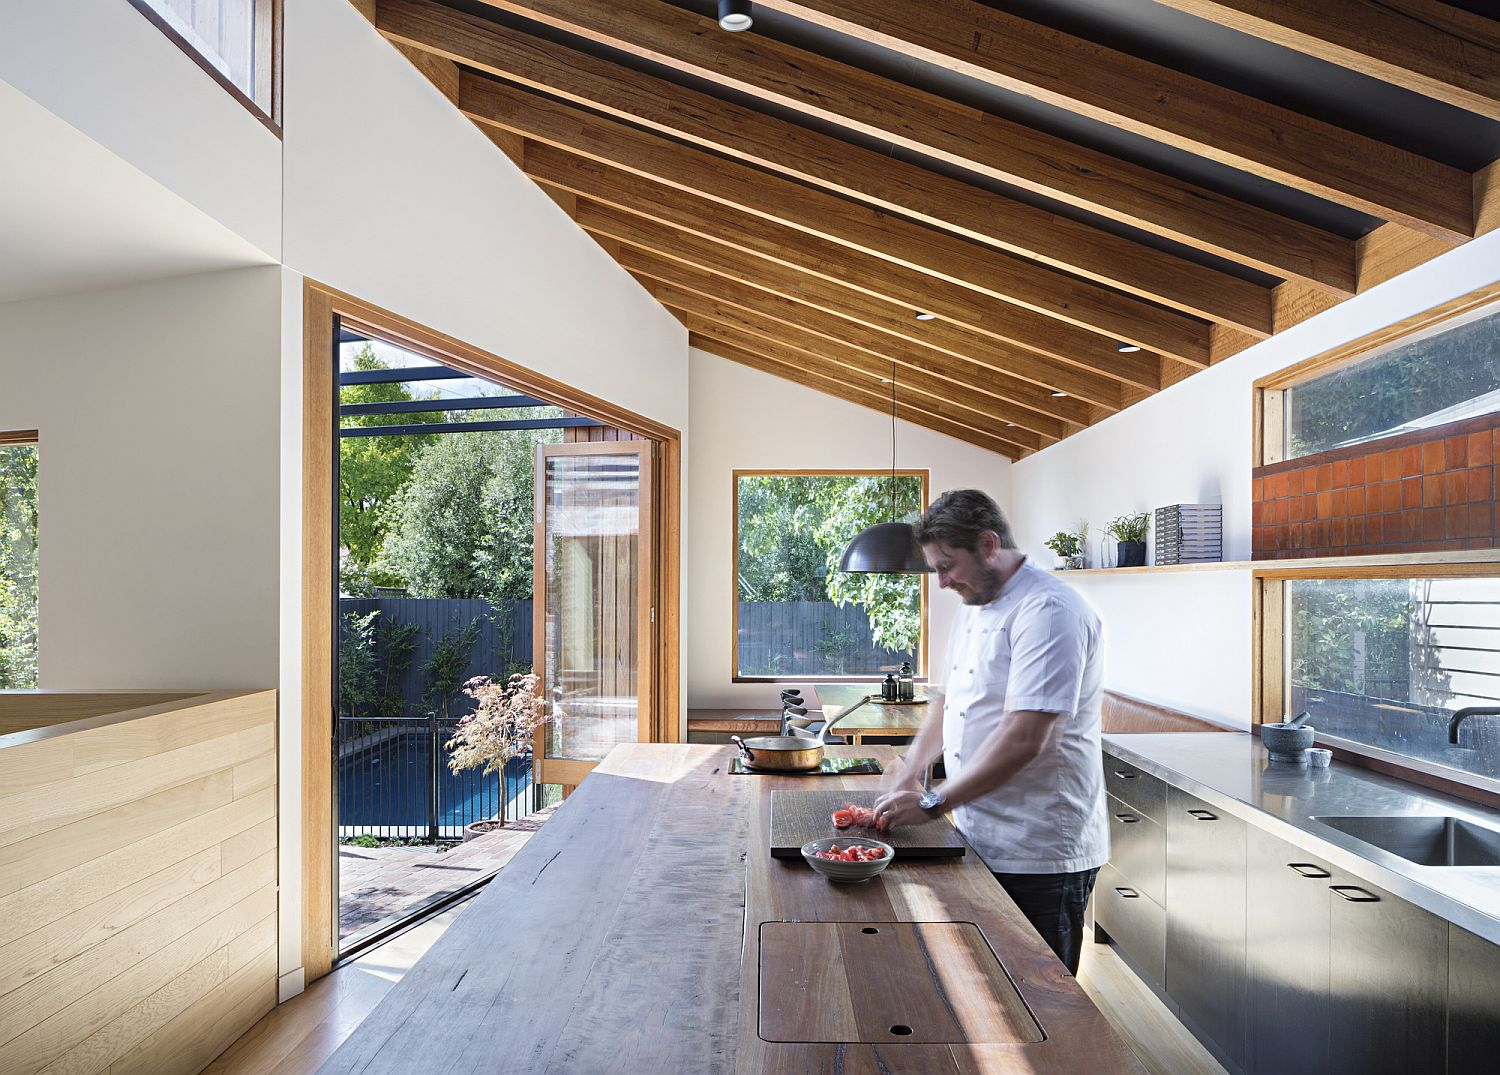 Kitchen is the heart of the revamped Aussie home